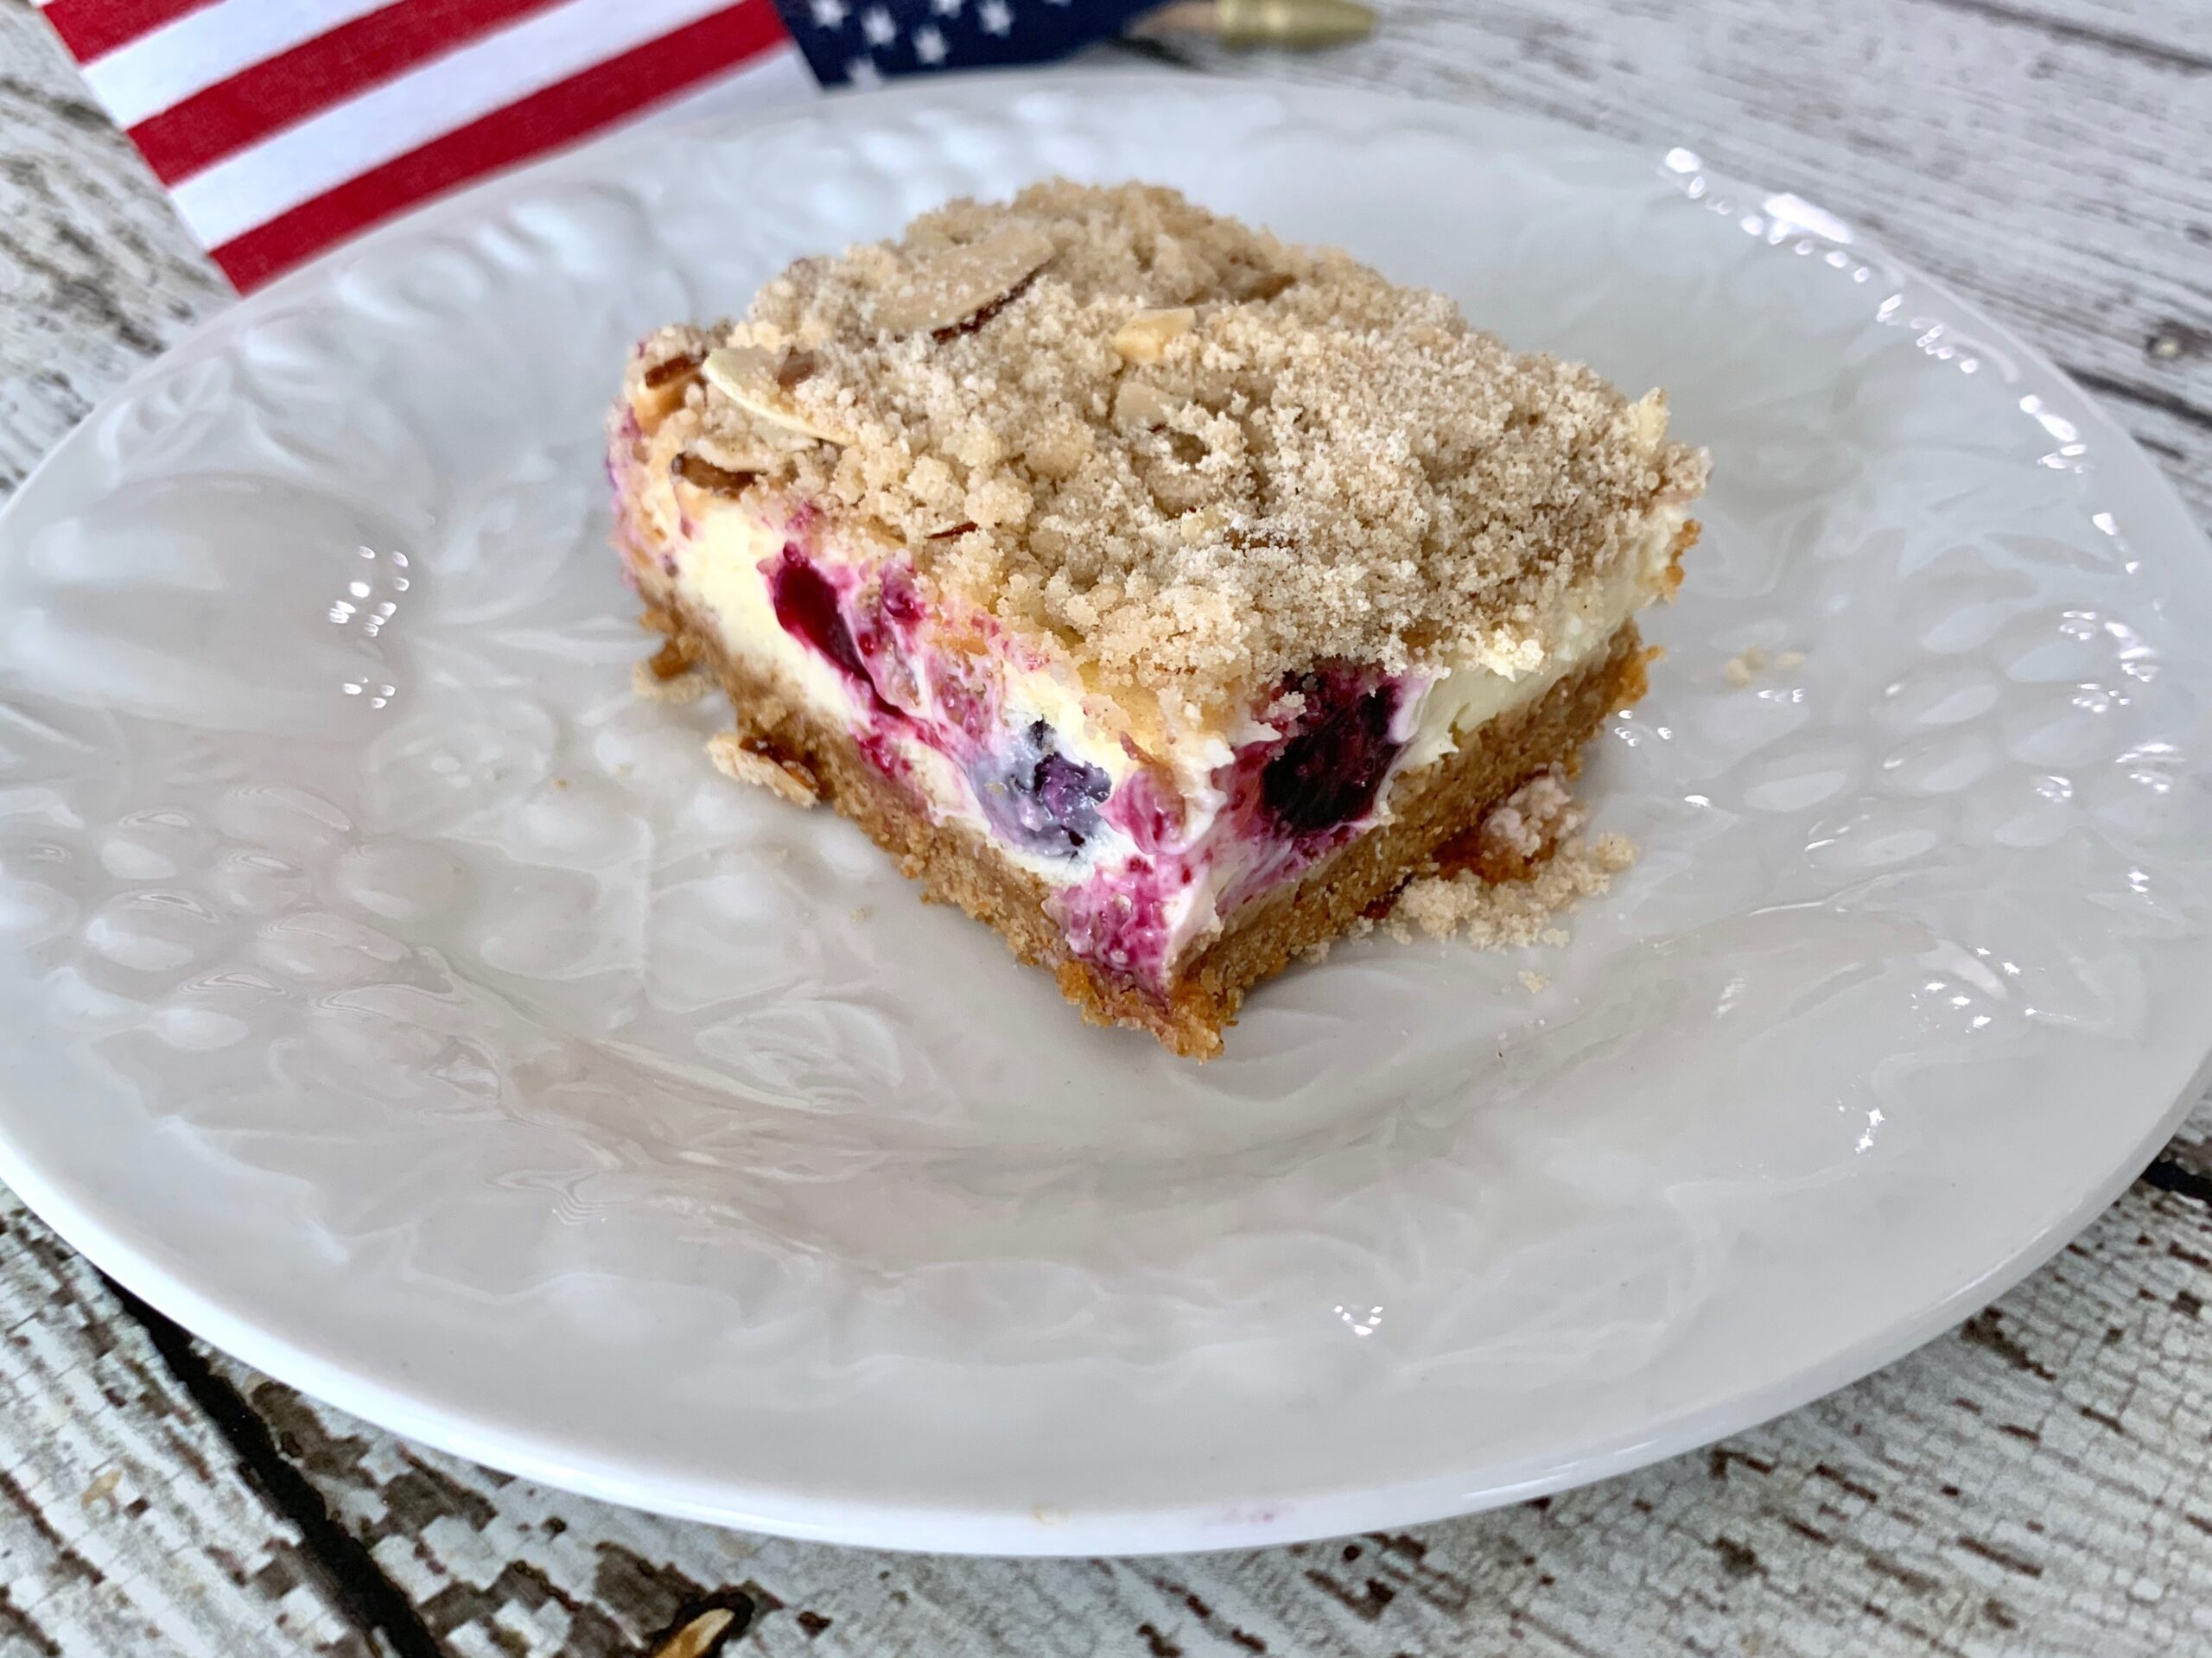 Blueberry Cheesecake Bars With Streusel Almond Topping